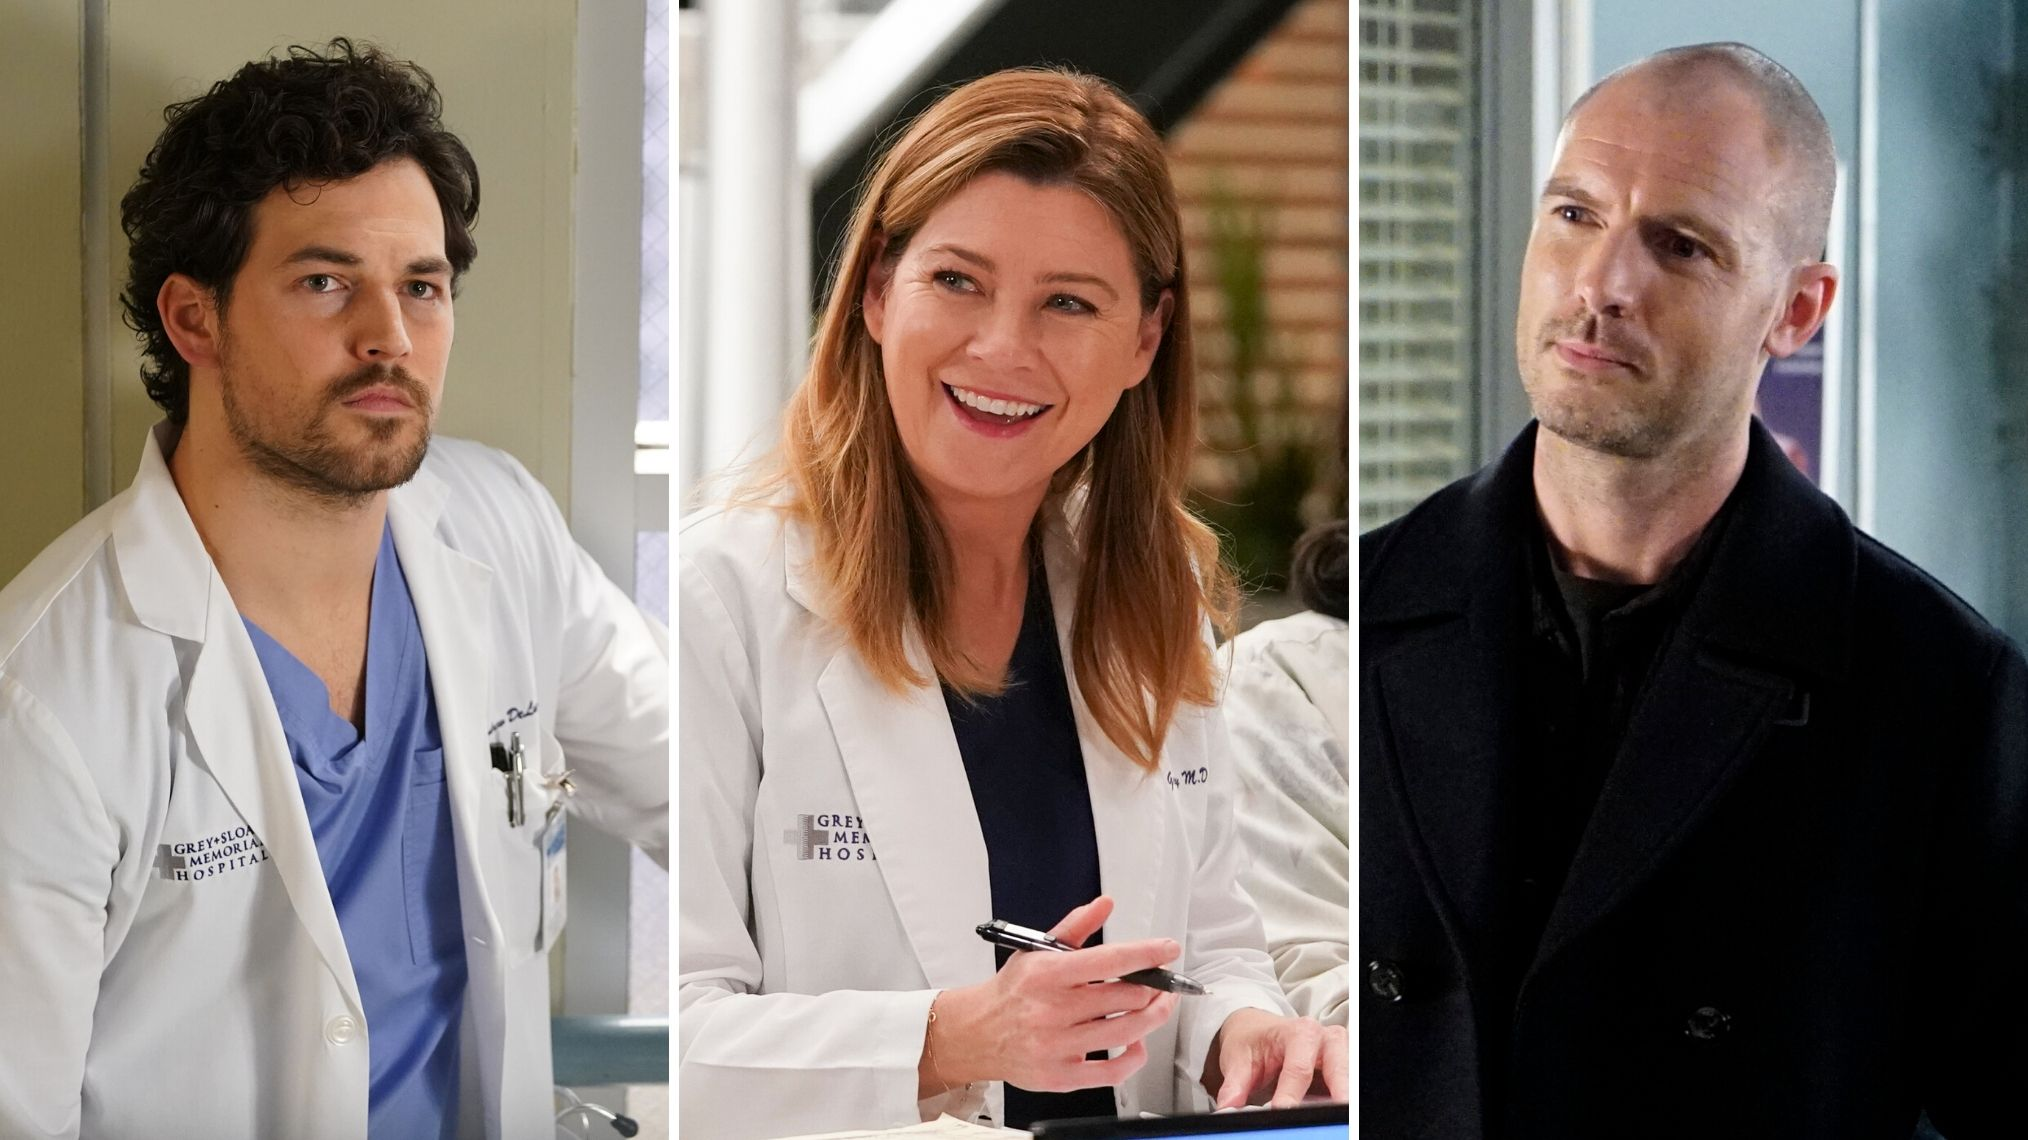 grey's anatomy 17 stagione deluca meredith merluca gianniotti coronavirus mcwidow flood